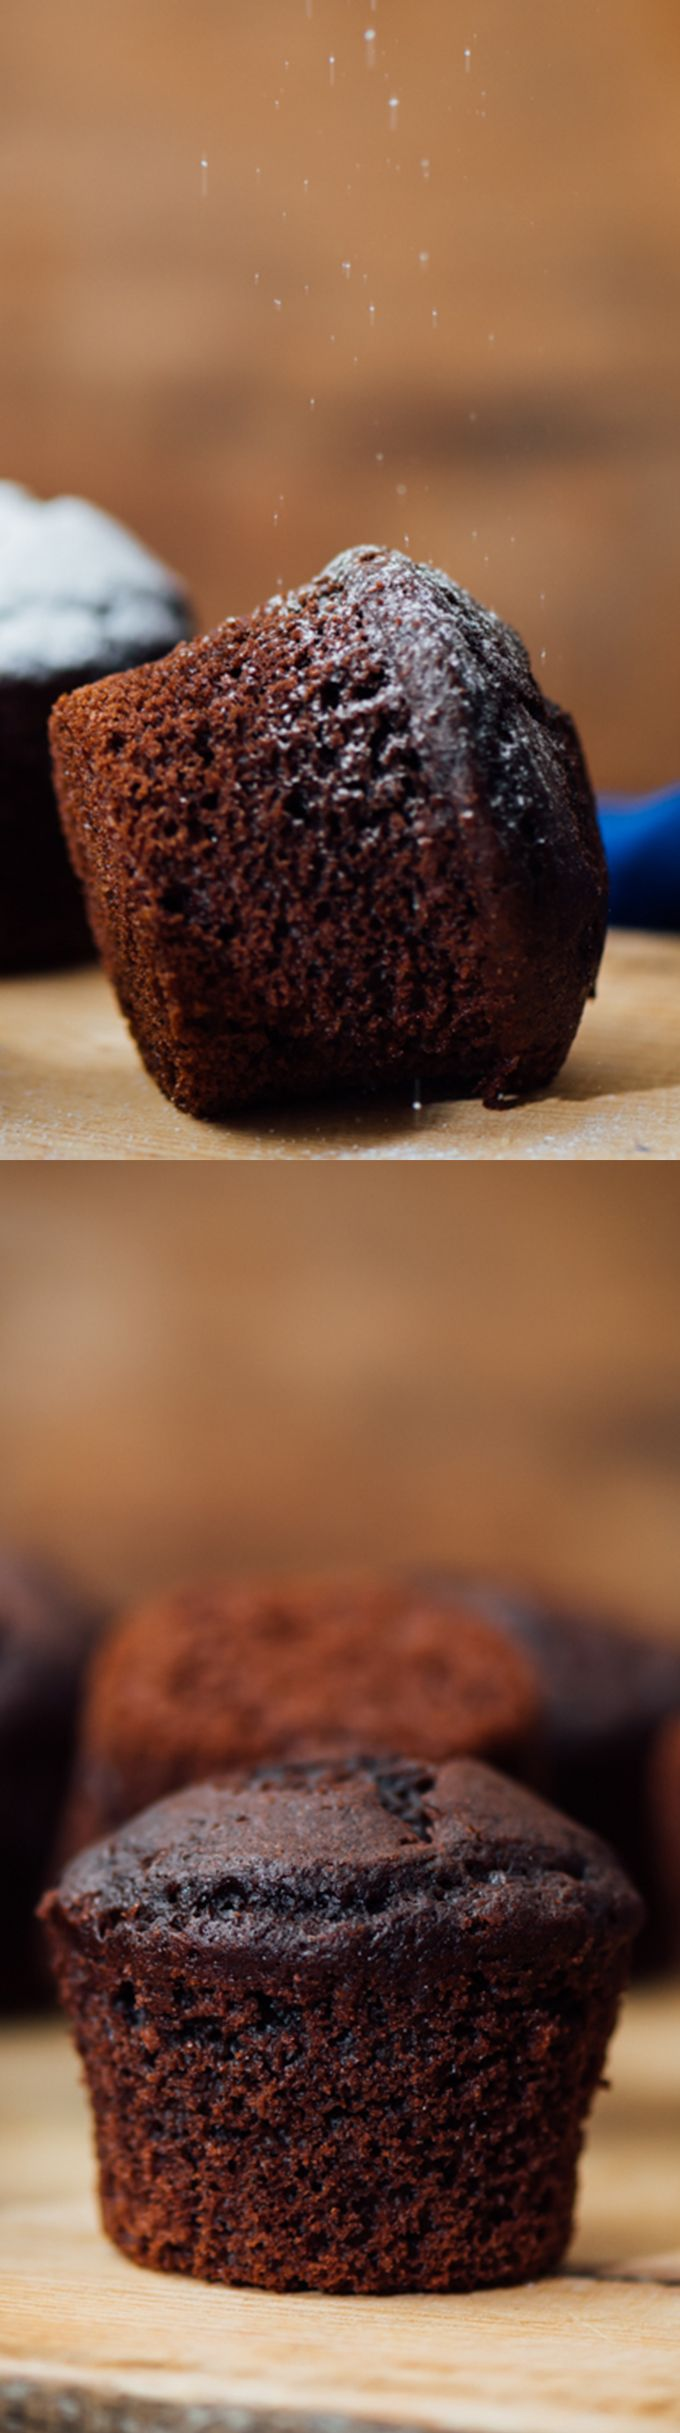 Buttermilk Chocolate Muffins are perfectly moist inside and you will feel like you're eating brownies in each bite.